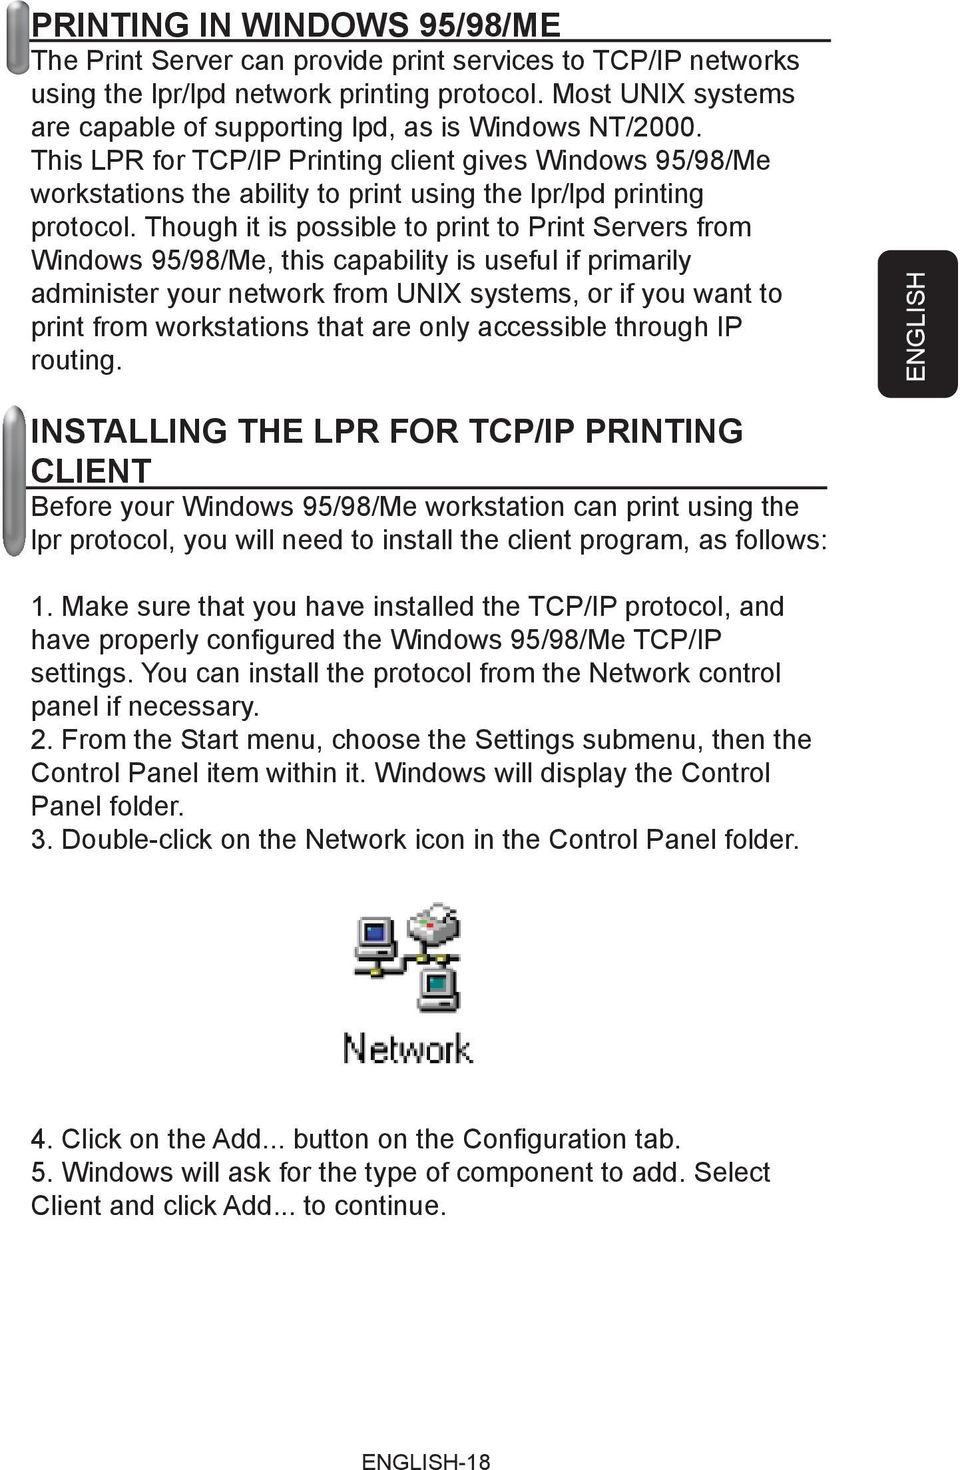 This LPR for TCP/IP Printing client gives Windows 95/98/Me workstations the ability to print using the lpr/lpd printing protocol.